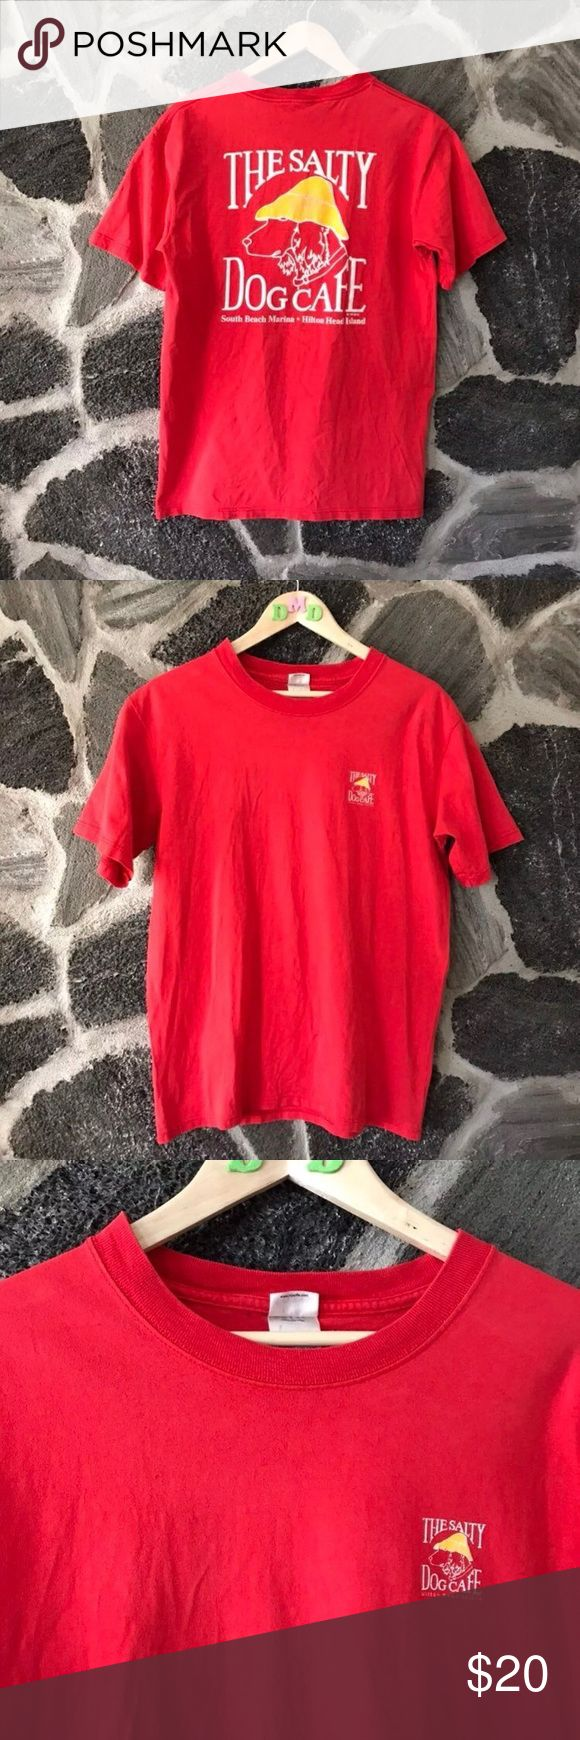 Vintage • red THE SALTY DOG graphic t-shirt Red THE SALTY DOG CAFE of Hilton Head island graphic t-shirt 1989 + size medium + condition 8.5/10 Very good condition , I washed it but didn't dry it so it's stiff until the next wash, true to size  #hiltonhead #saltydog #cafe #vintage #vtg #red #graphic #souvenir #travel #tourist #vacation #christmas #shopping #cybermonday #sale #gift #present Vintage Shirts Tees - Short Sleeve